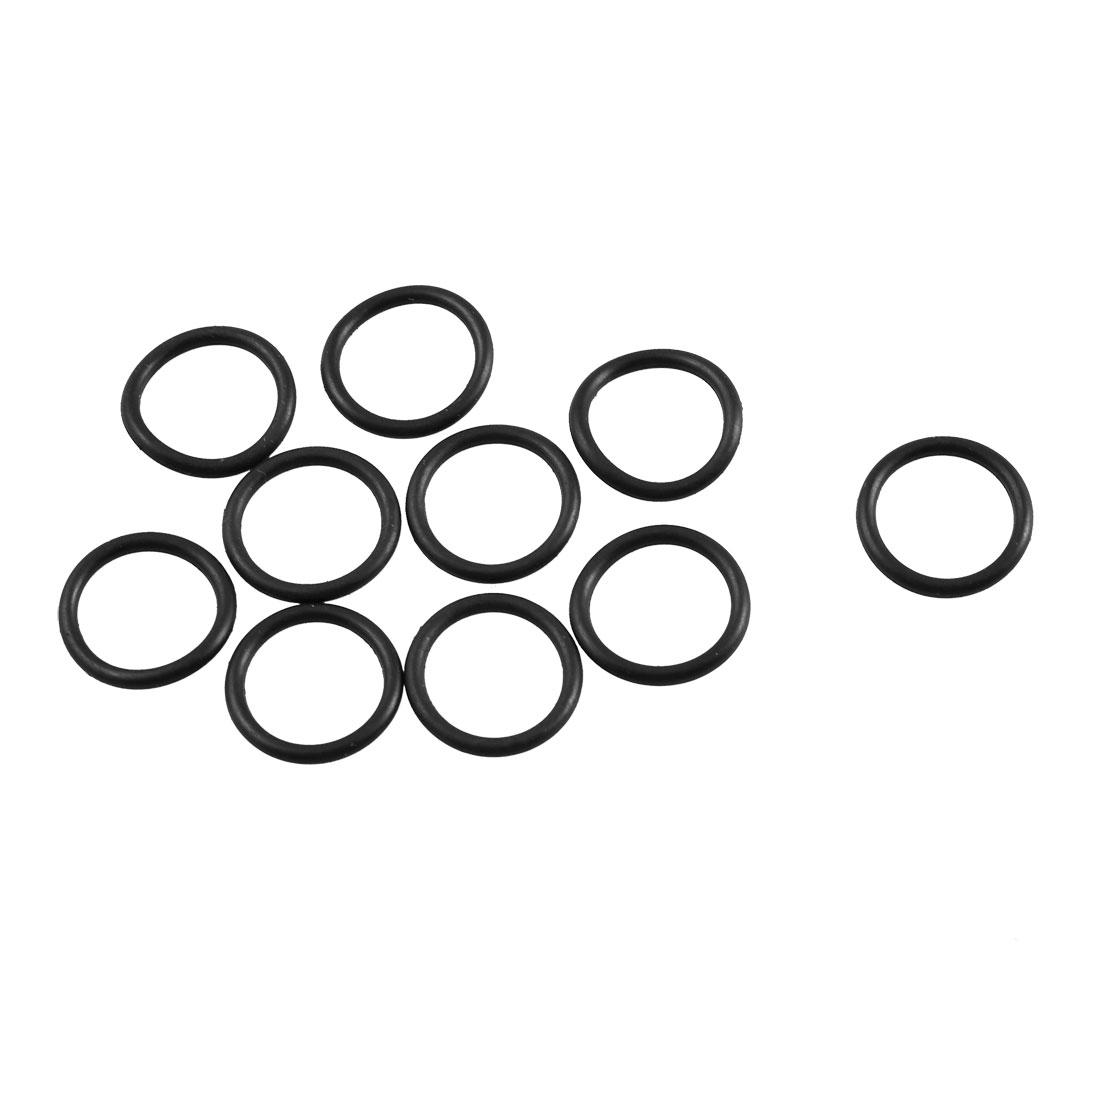 10 Pcs Black Rubber O Shaped Oil Sealing Gasket Ring 11.8mm x 1.8mm